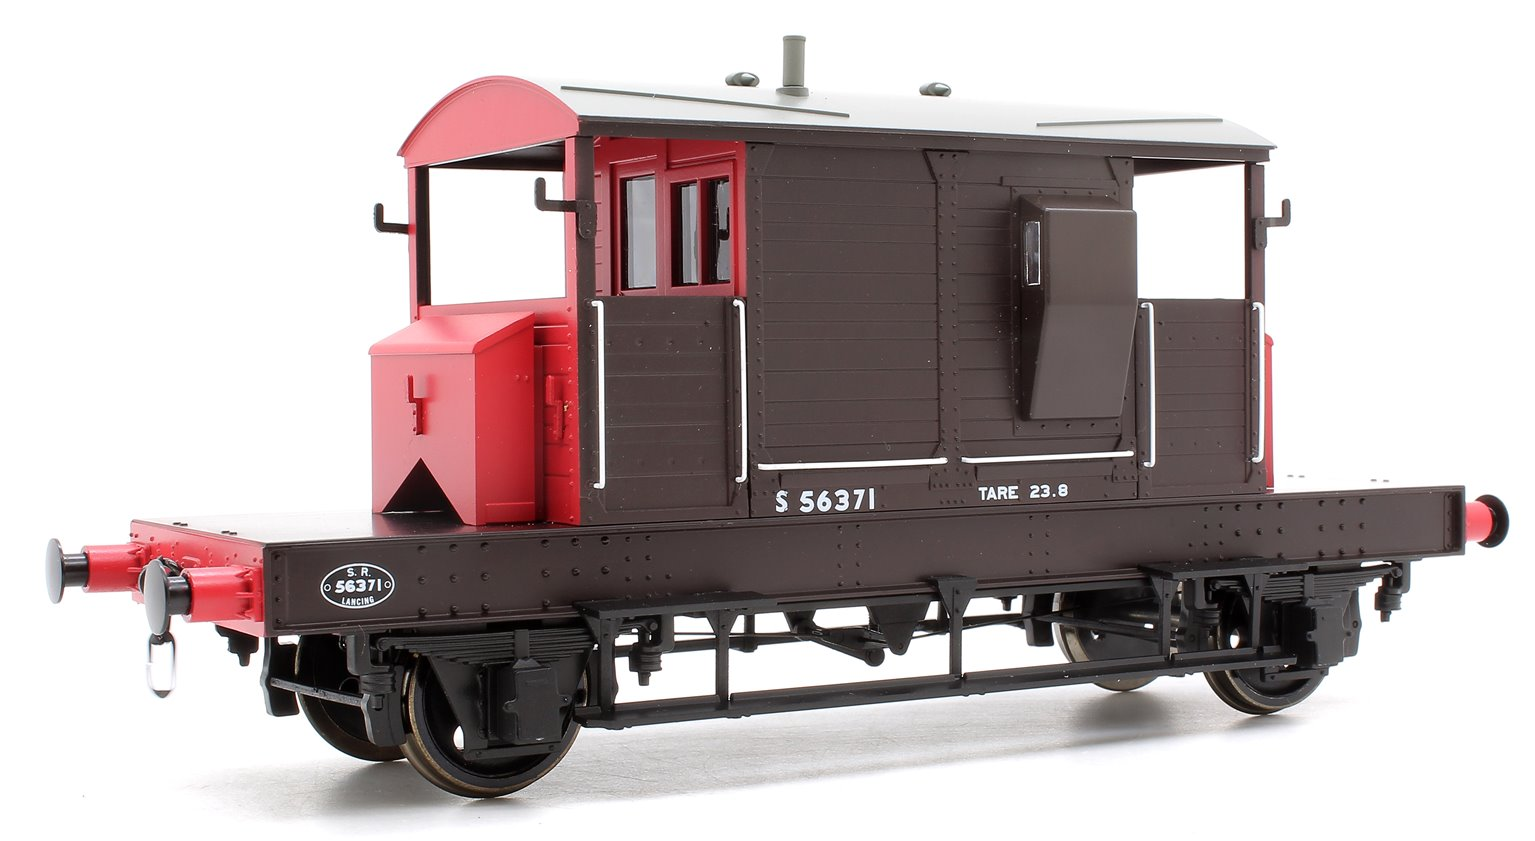 Pill Box Brake Van S56371 S R Brown/Red small letters (Uneven Plank)